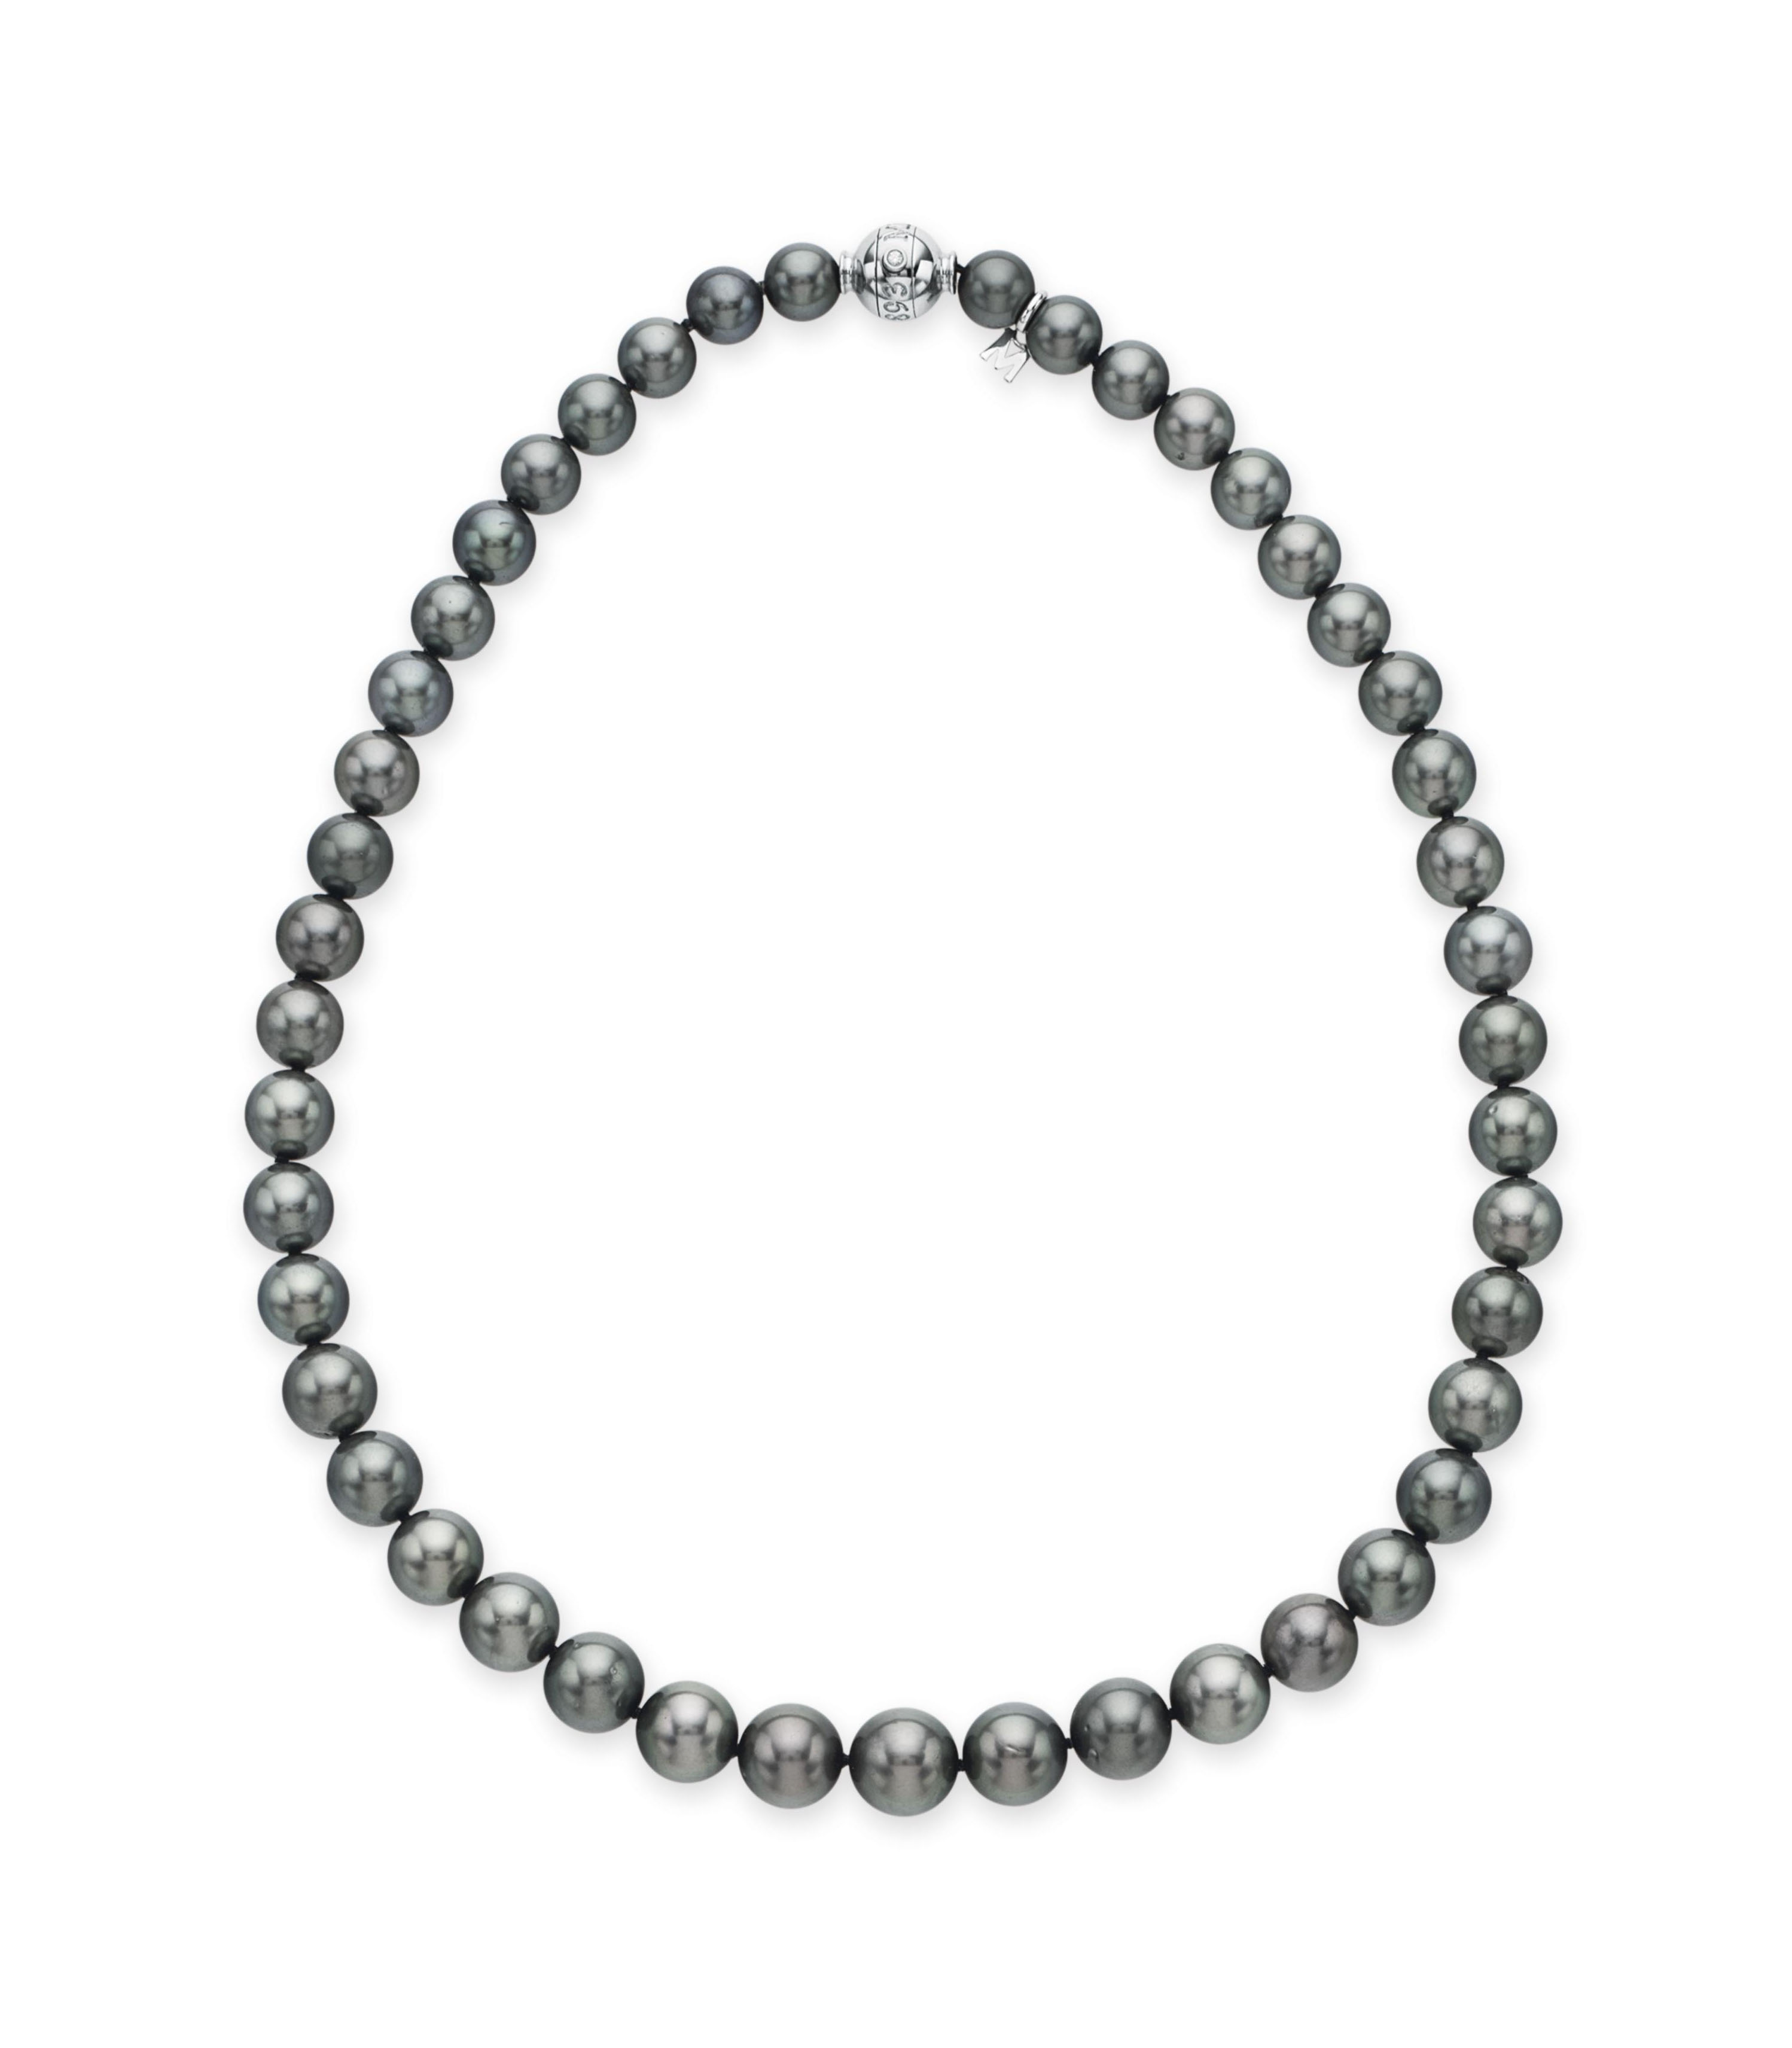 A SINGLE-STRAND GRAY CULTURED PEARL NECKLACE, BY MIKIMOTO